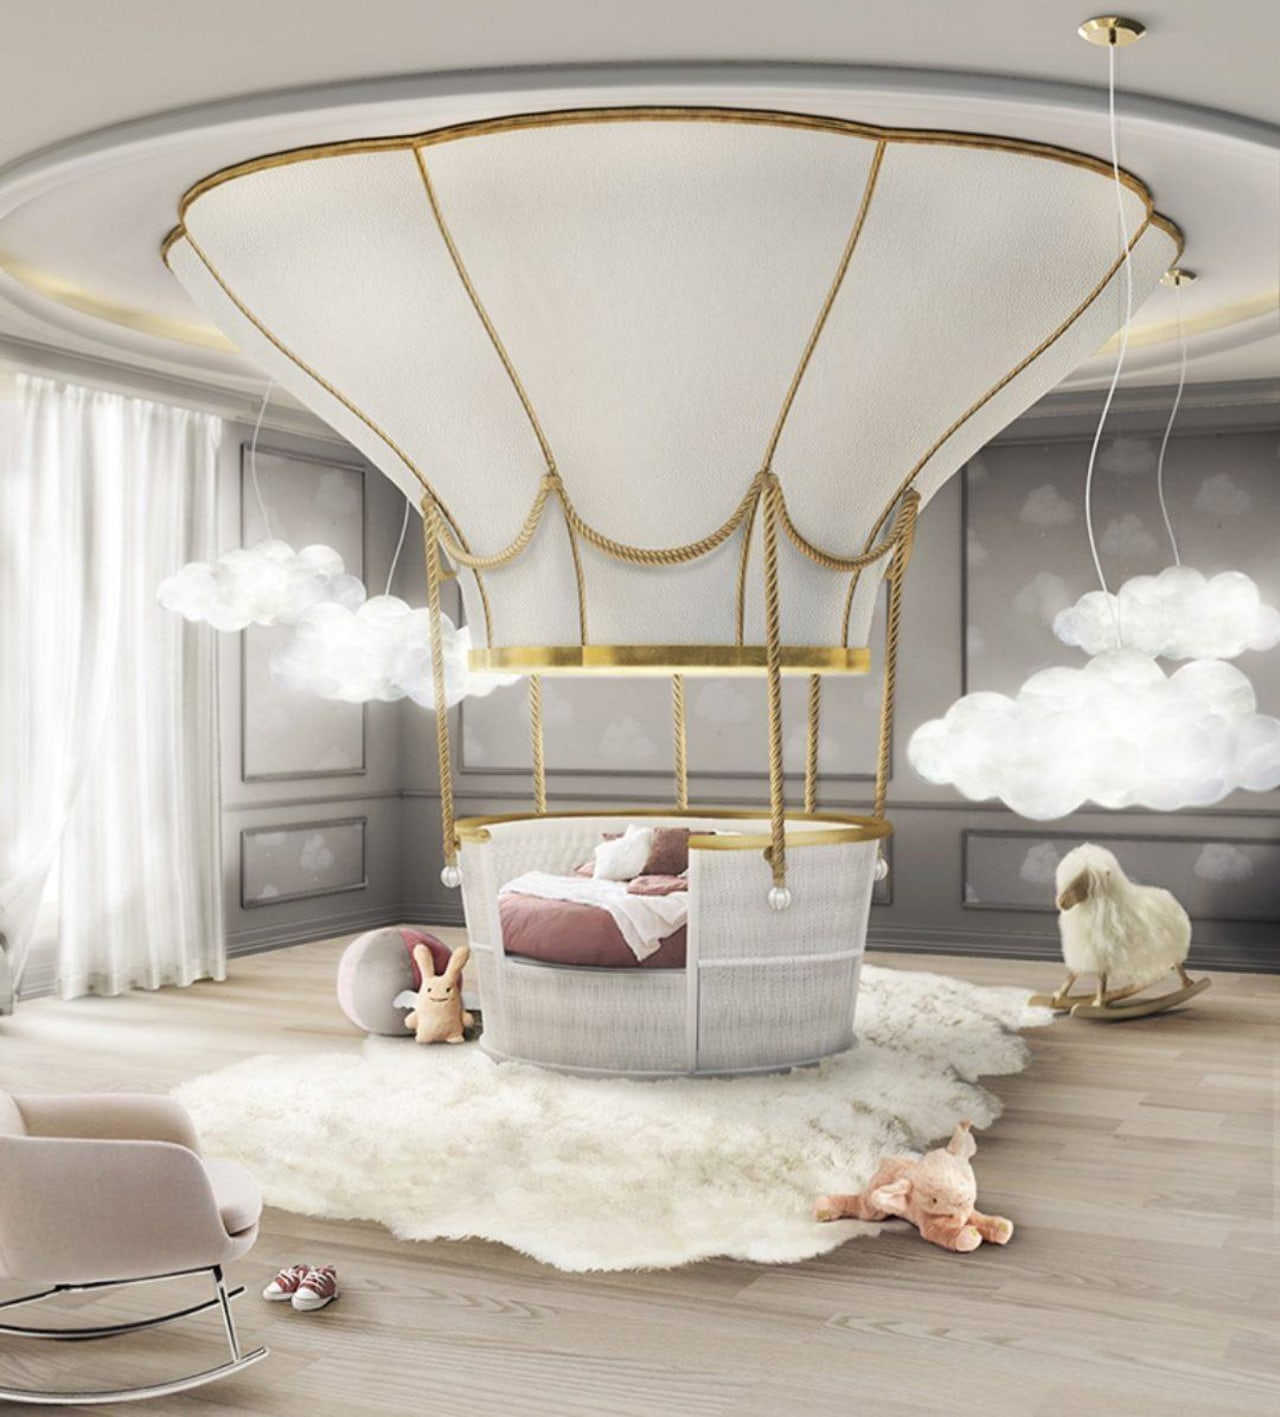 Circa's Air Balloon bed is a themed children's